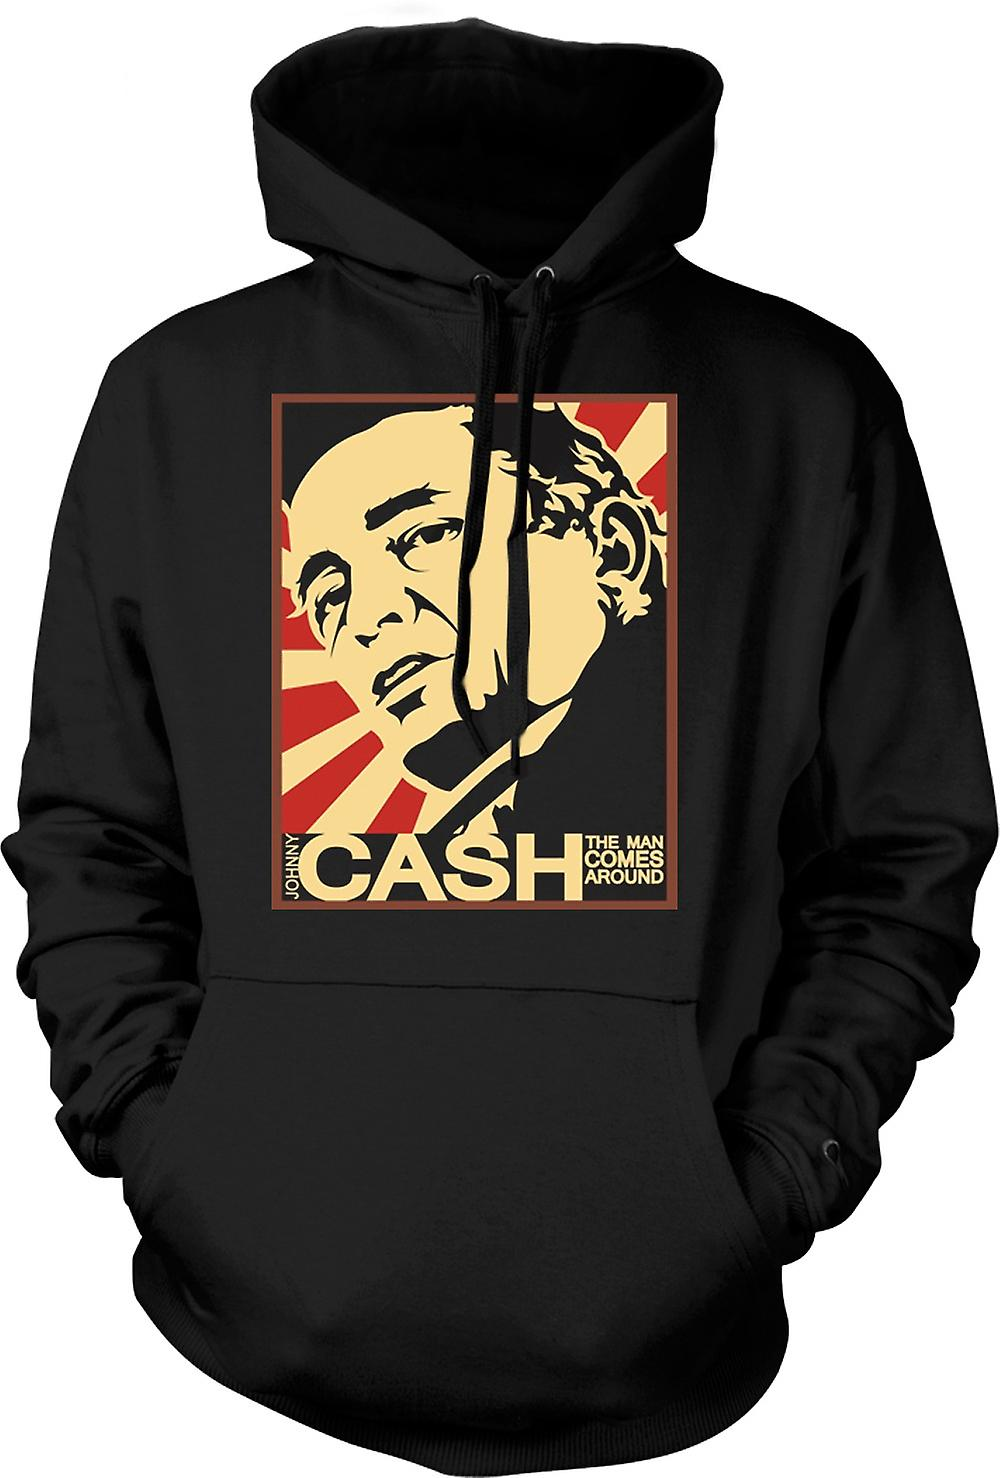 Hoodie Kids - Johnny Cash - Man Comes Around